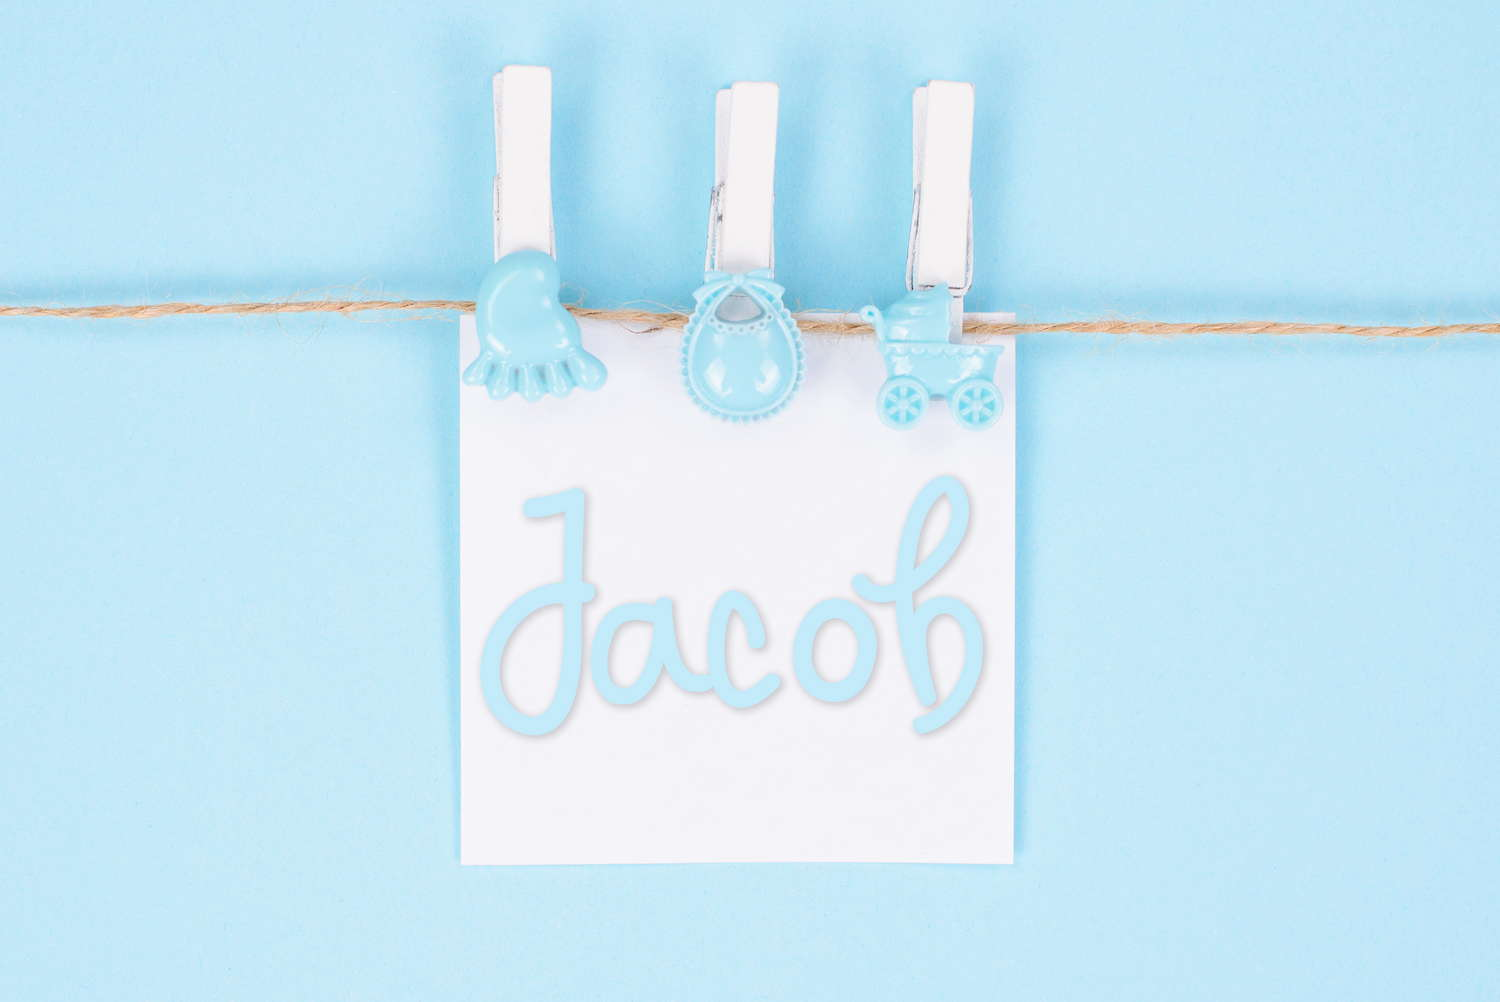 Jacob Baby Name